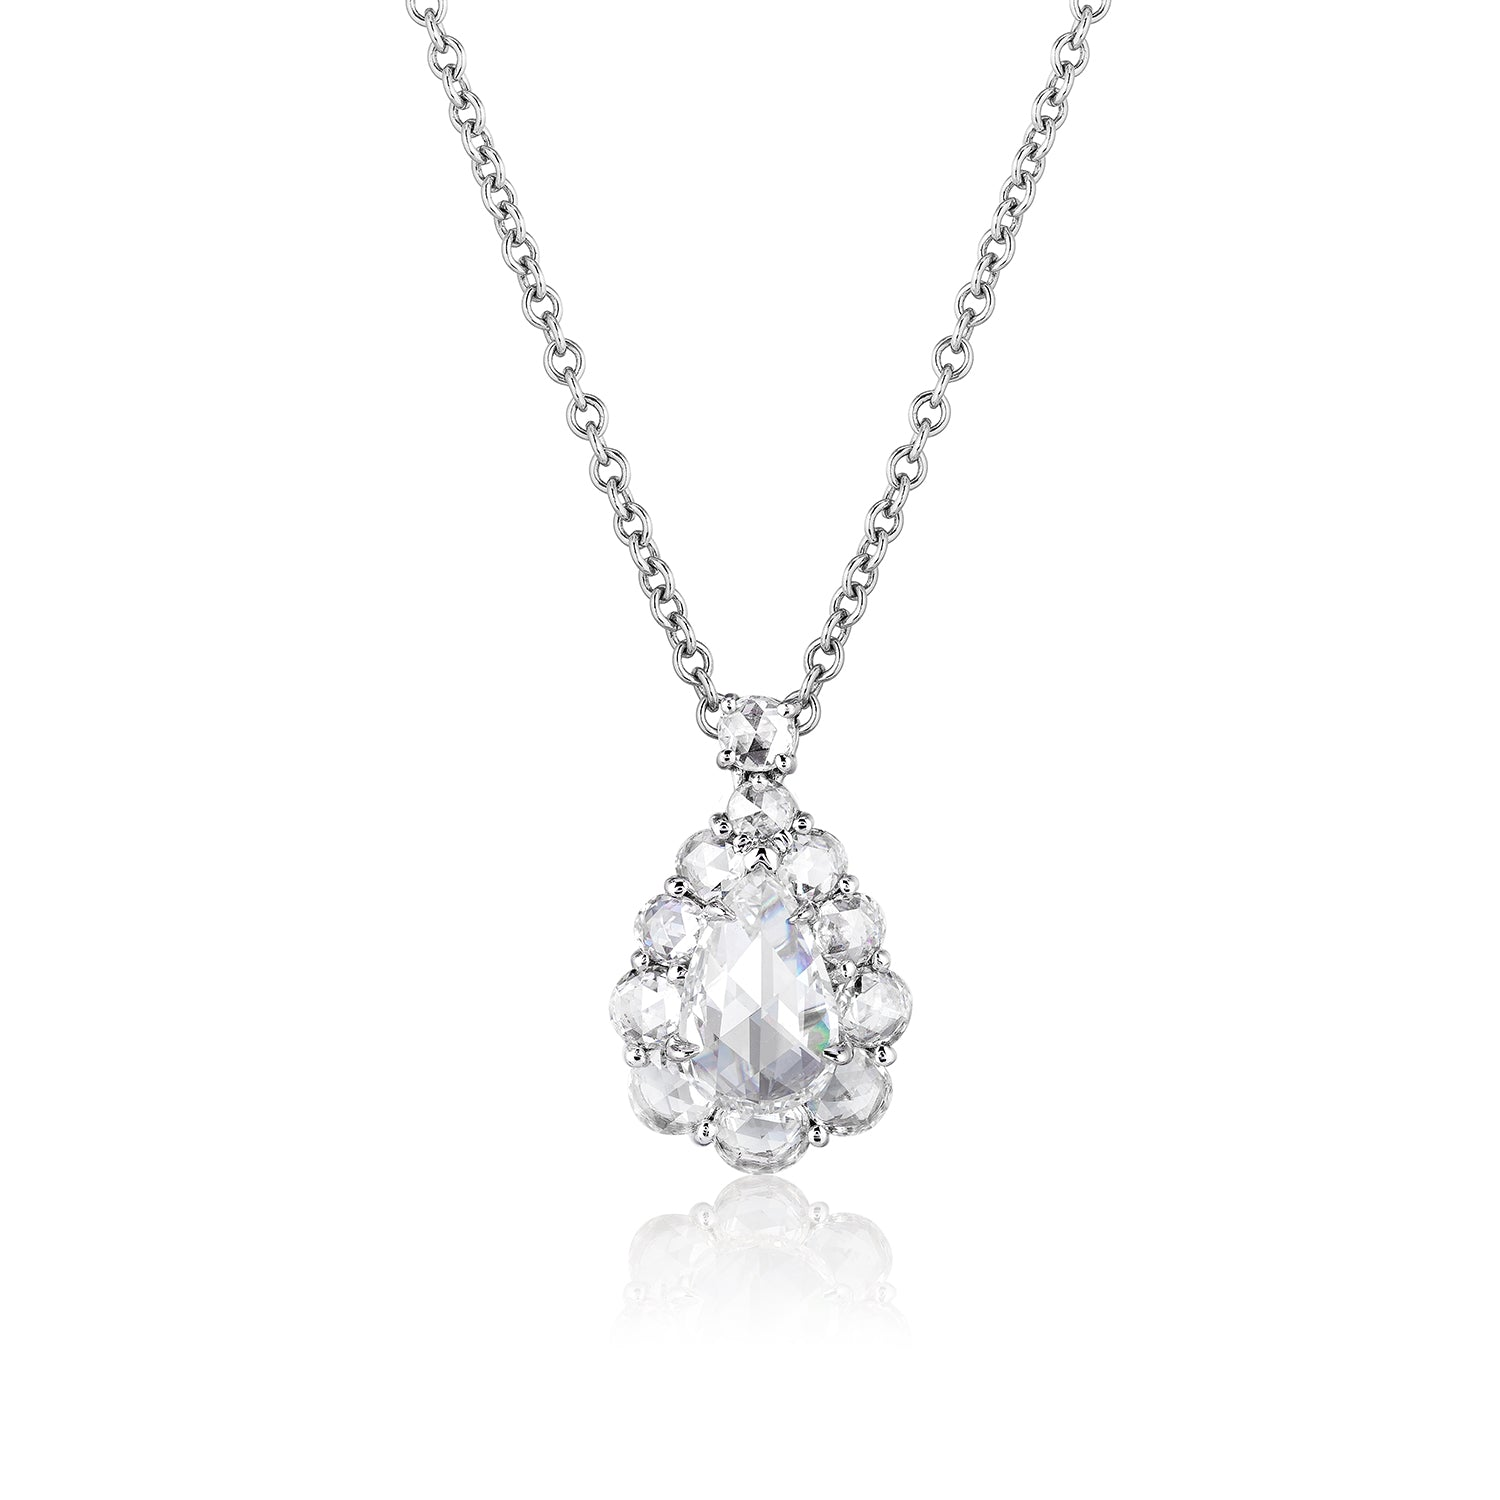 Rose-Cut Diamond Pendant